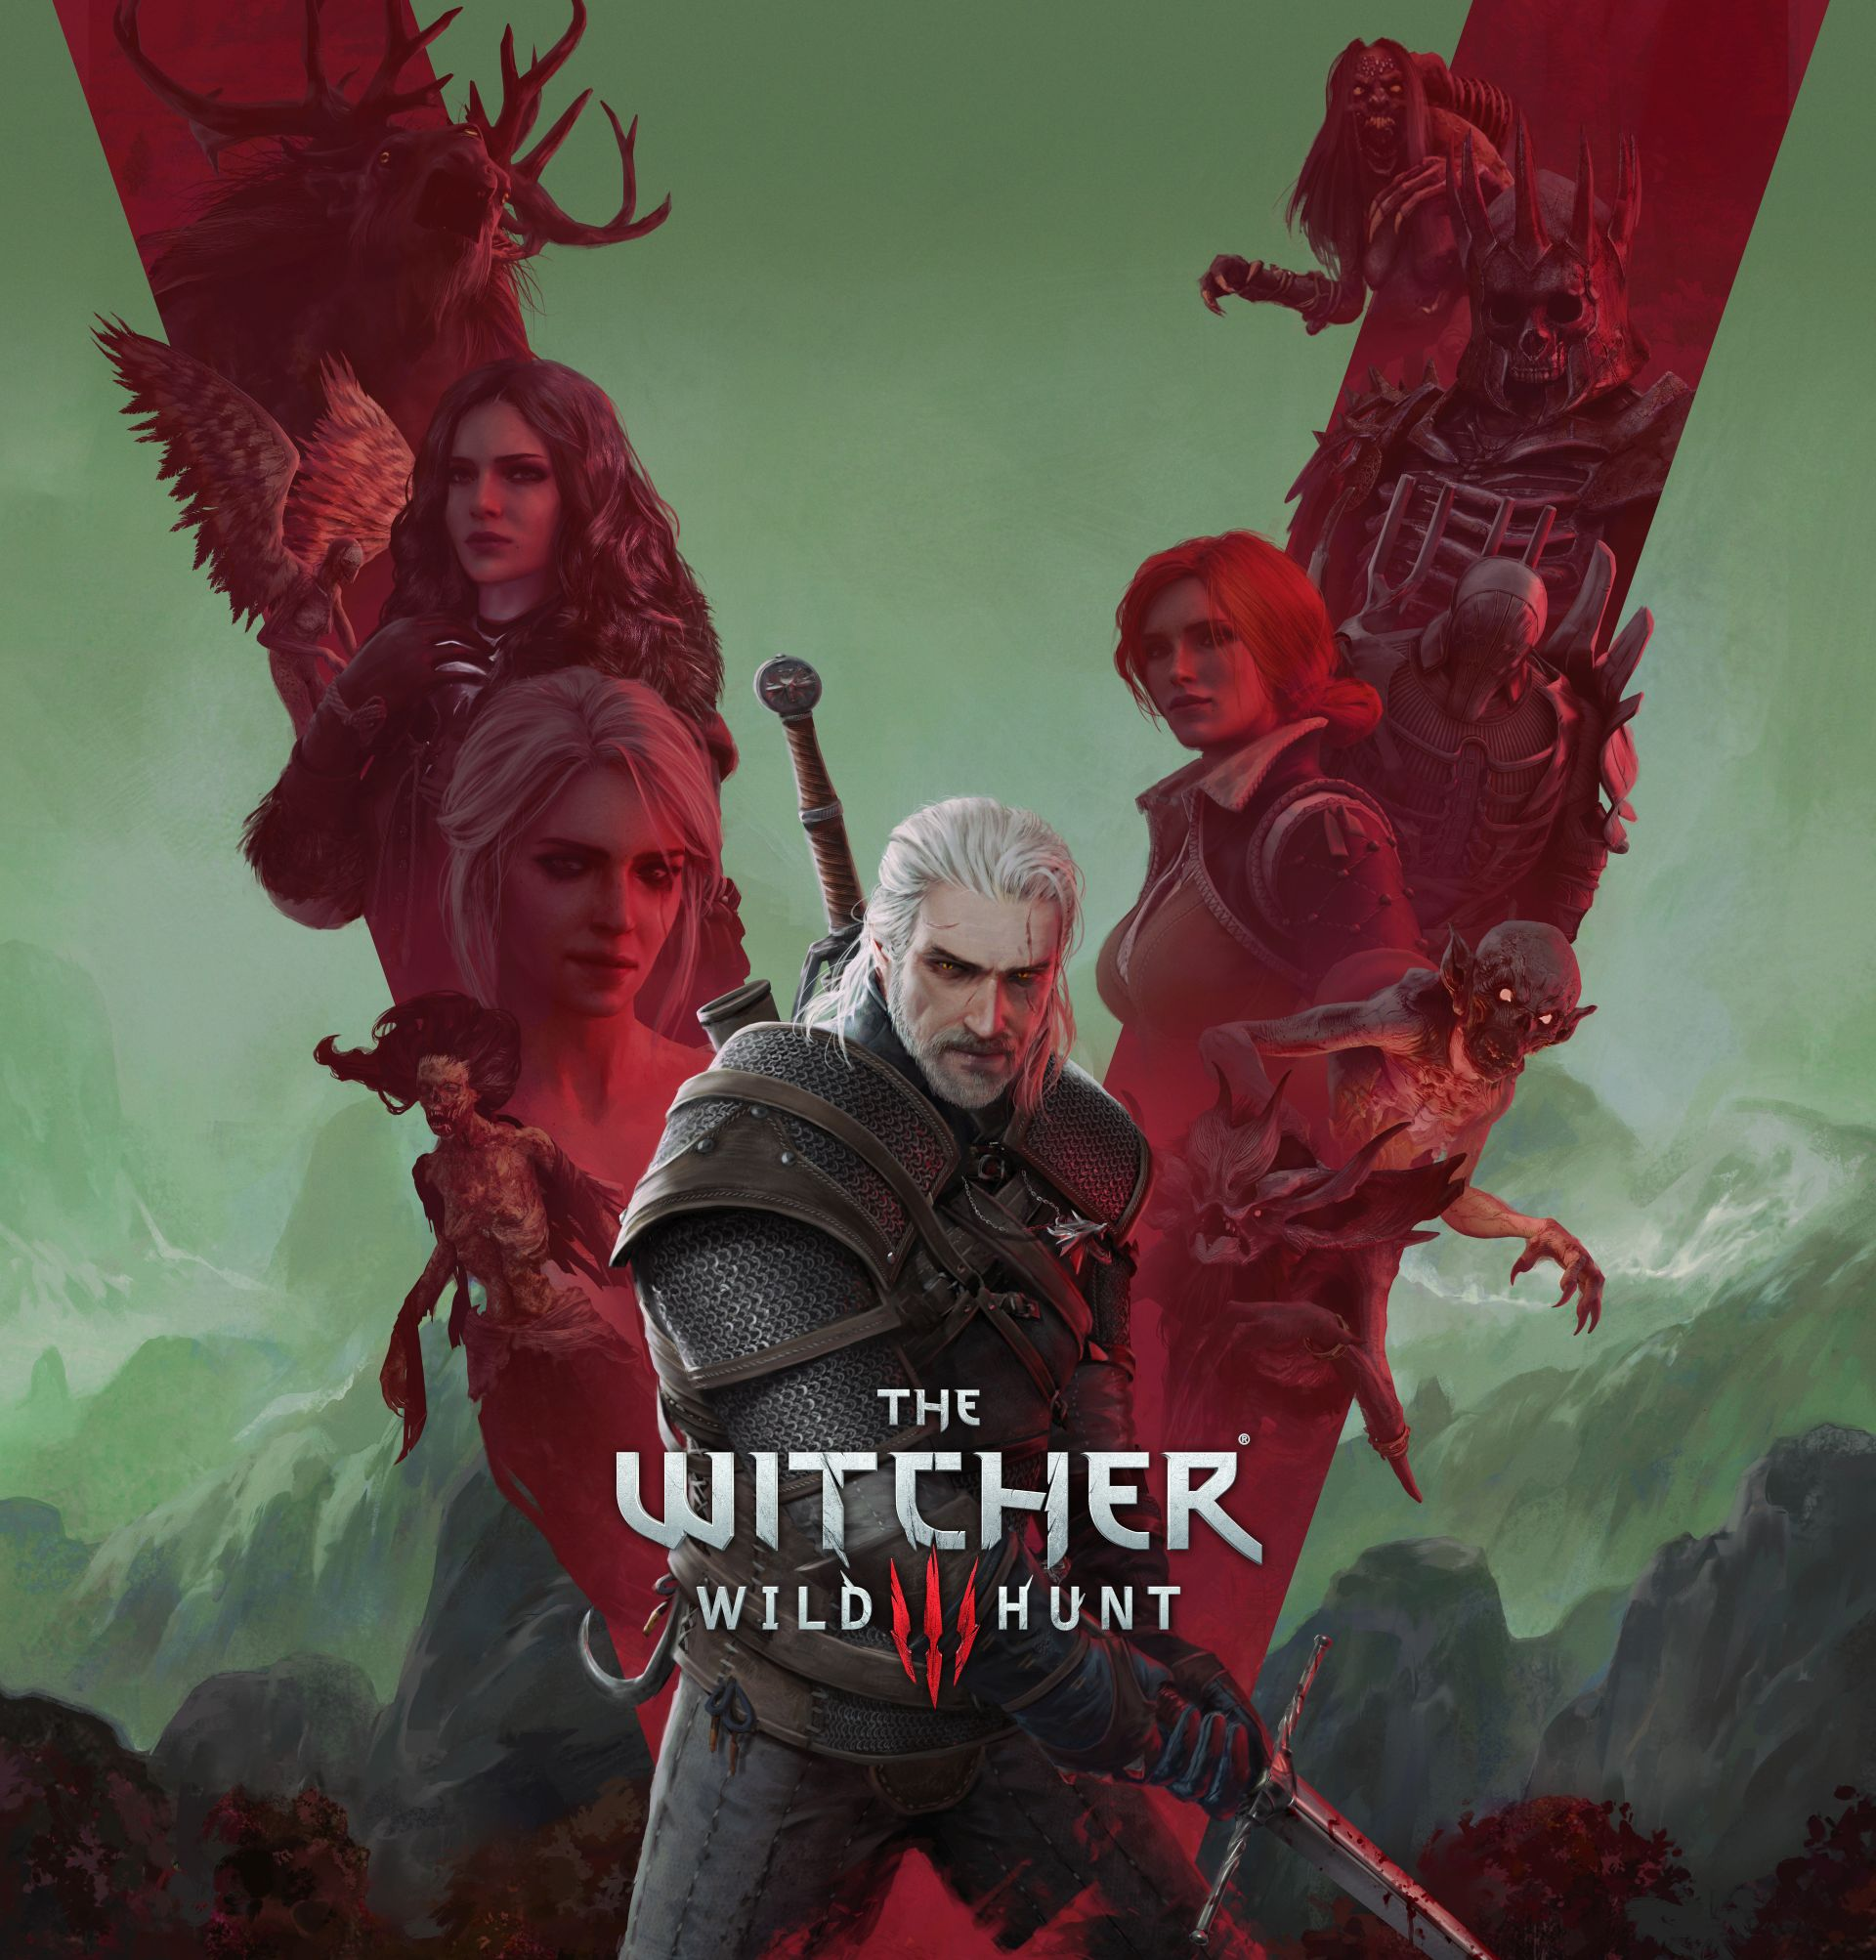 Witcher Games are up to 85% off across all platforms